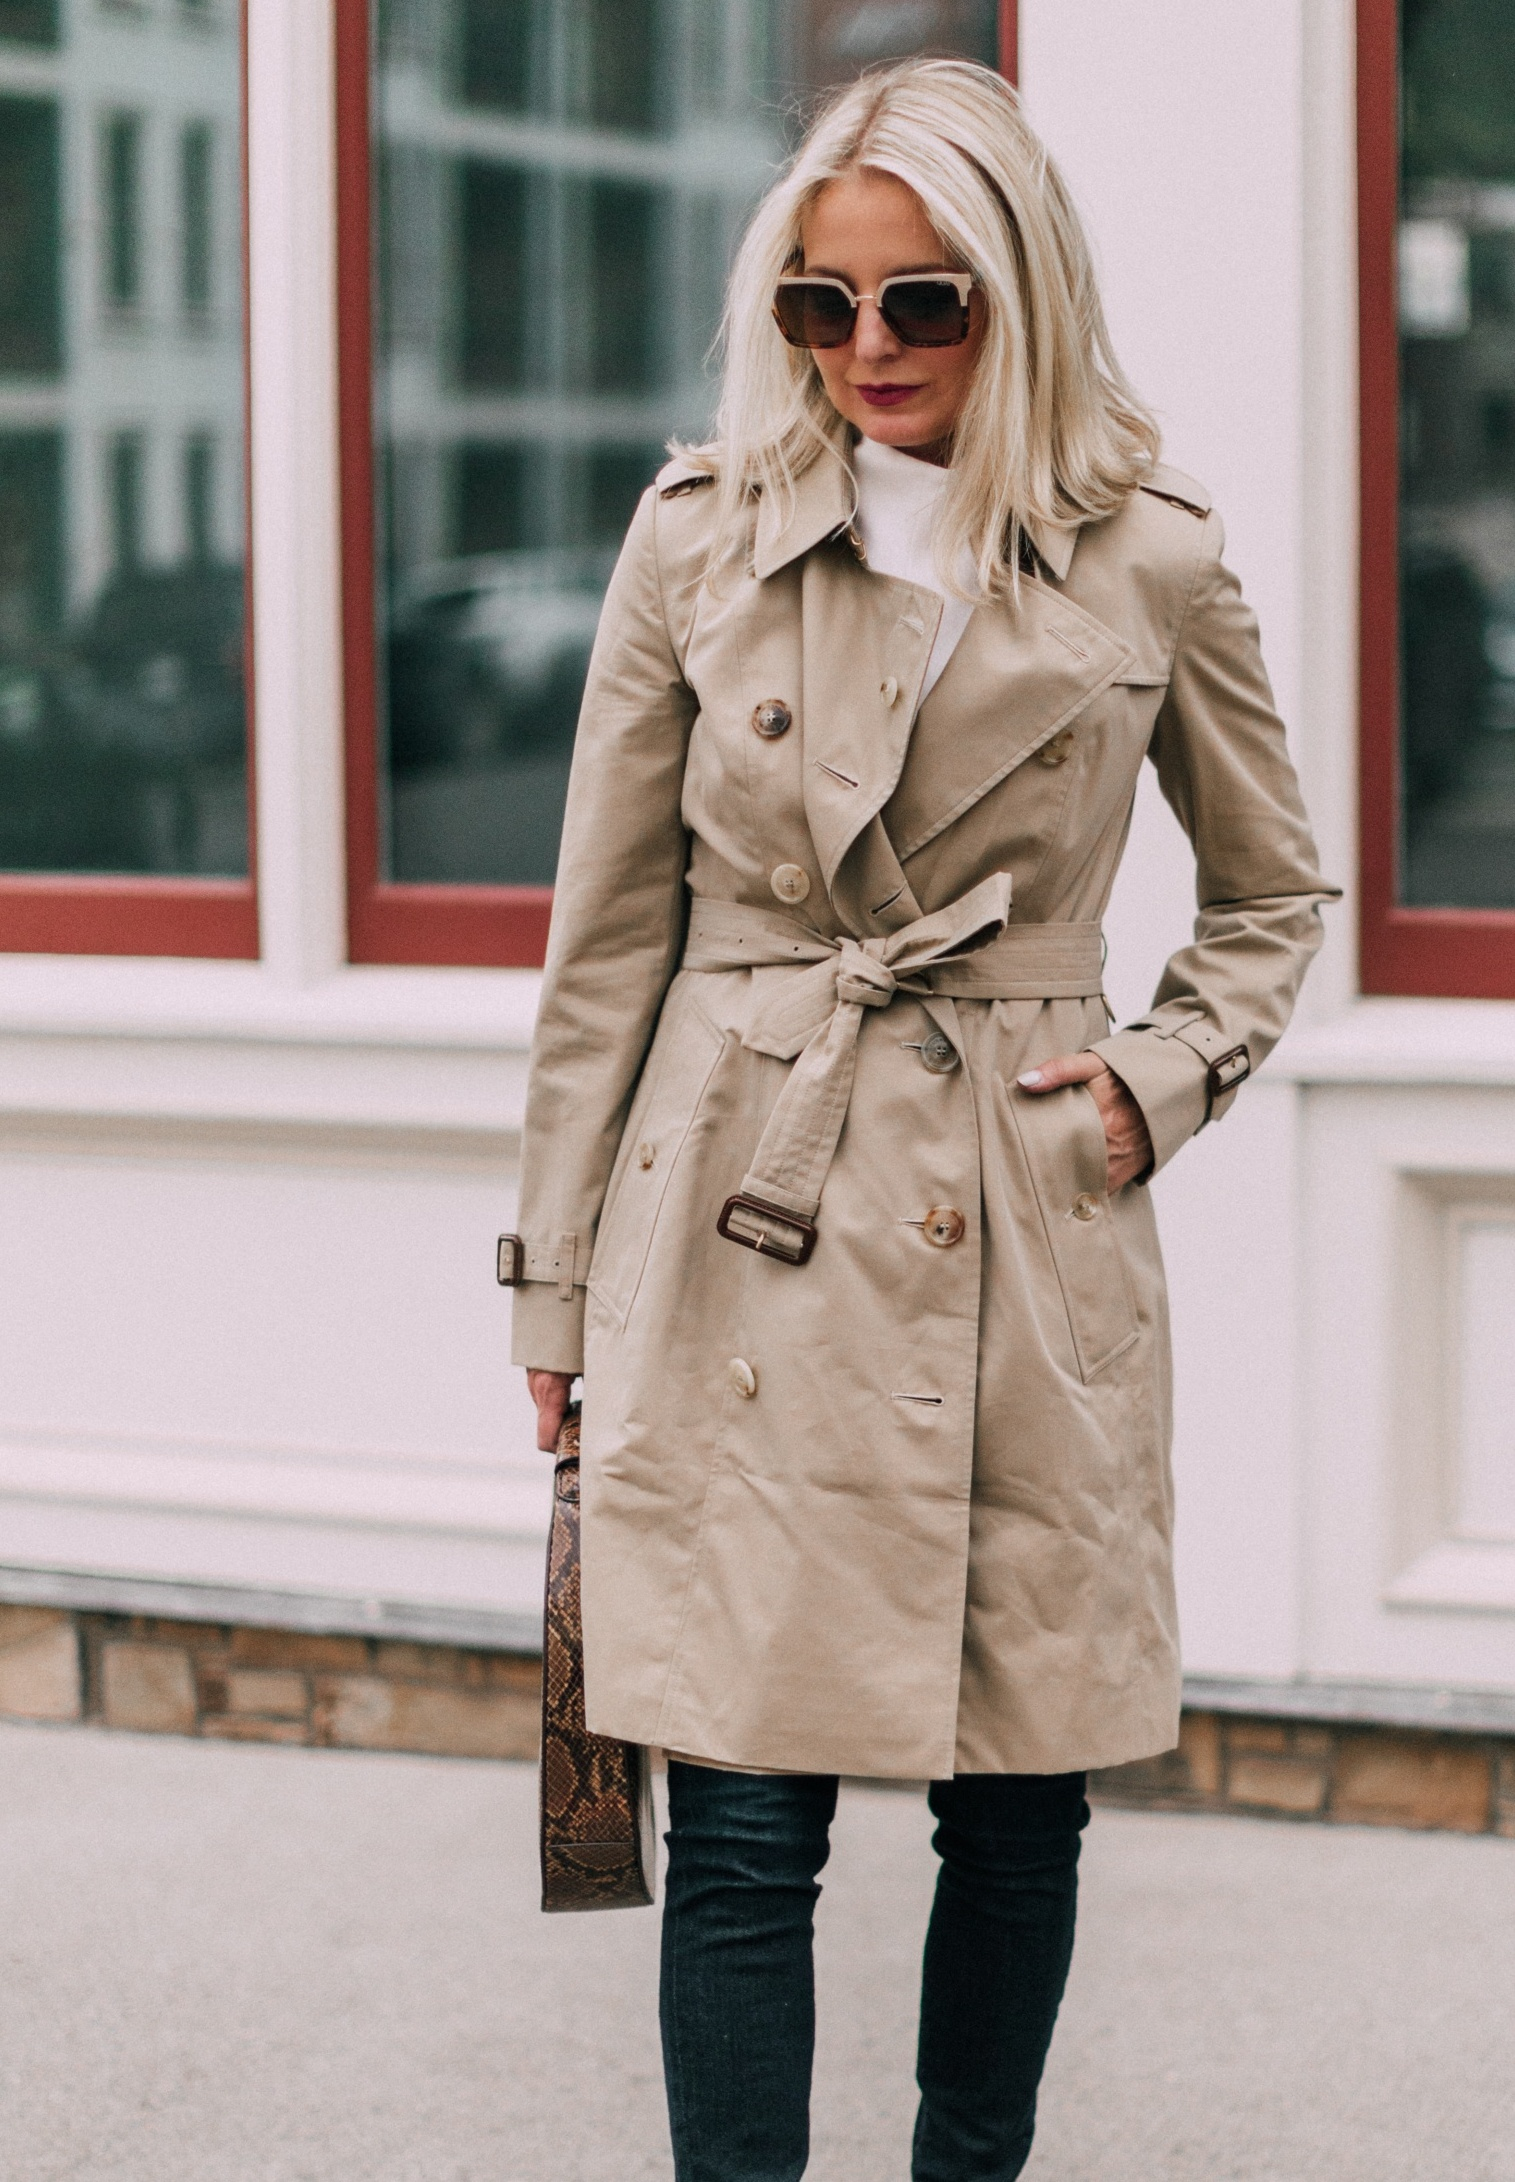 burberry chelsea heritage slim fit trench coat in honey color, reviewing iconic burberry trench coat